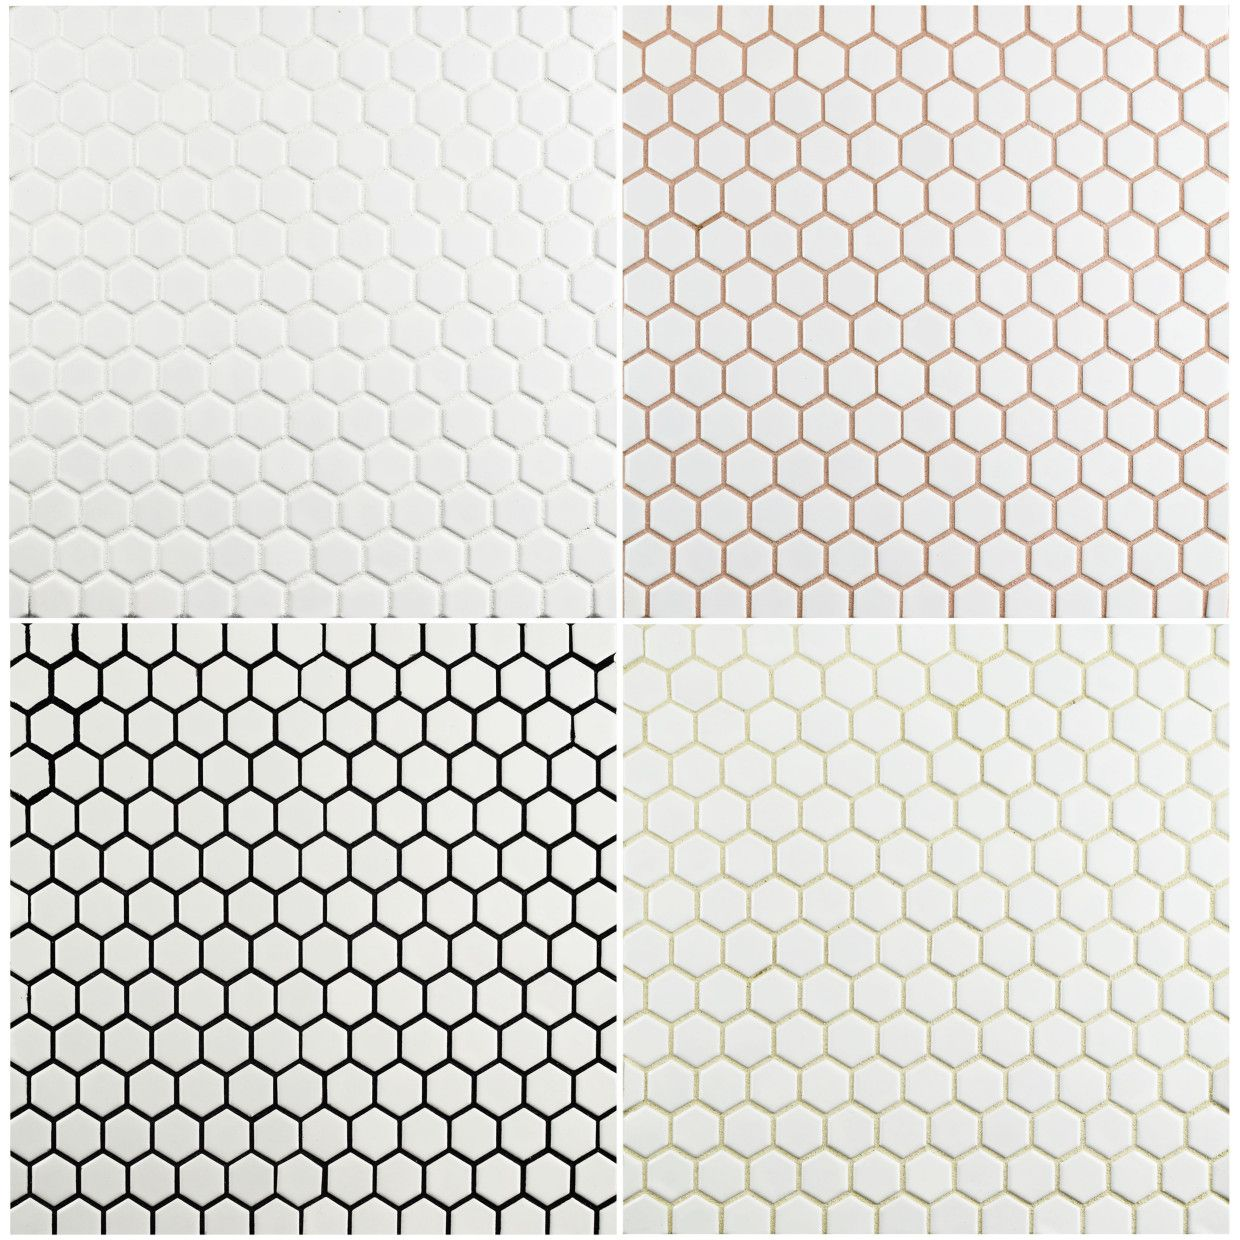 Be All About Grout Penny Tile Penny Tiles Bathroom Tile Grout Color